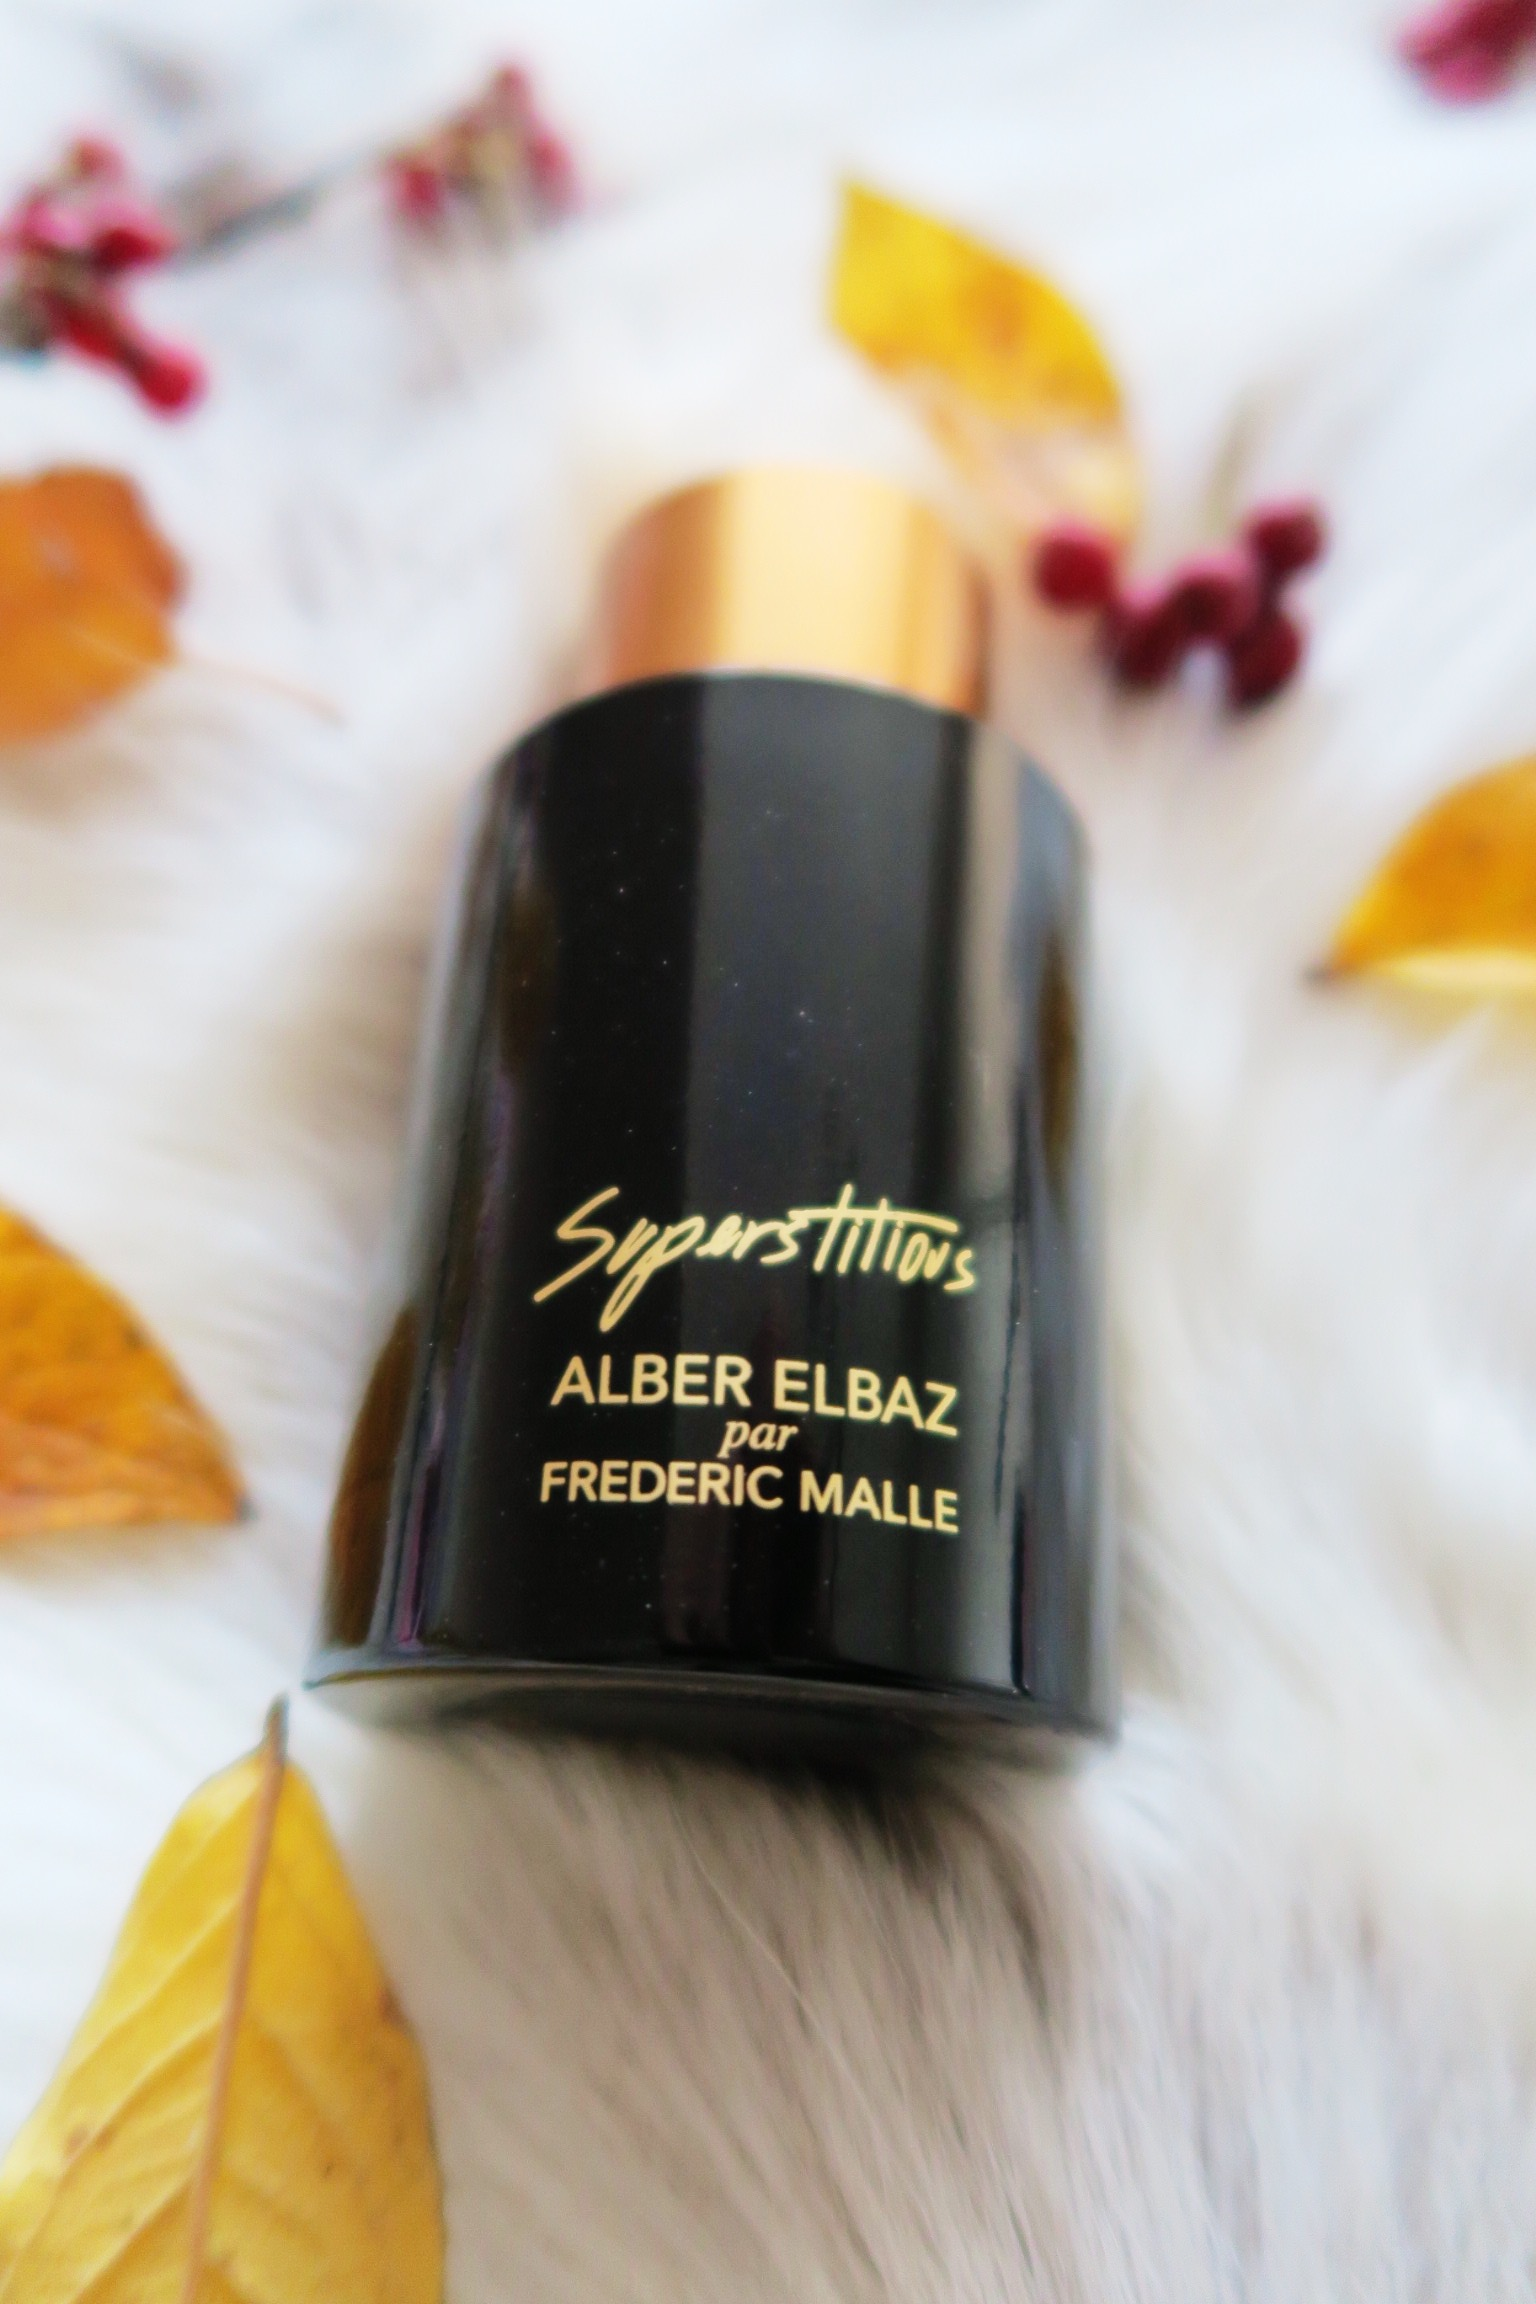 Superstitious by Alber Elbaz for Frederic Malle, £158 for 50ml.